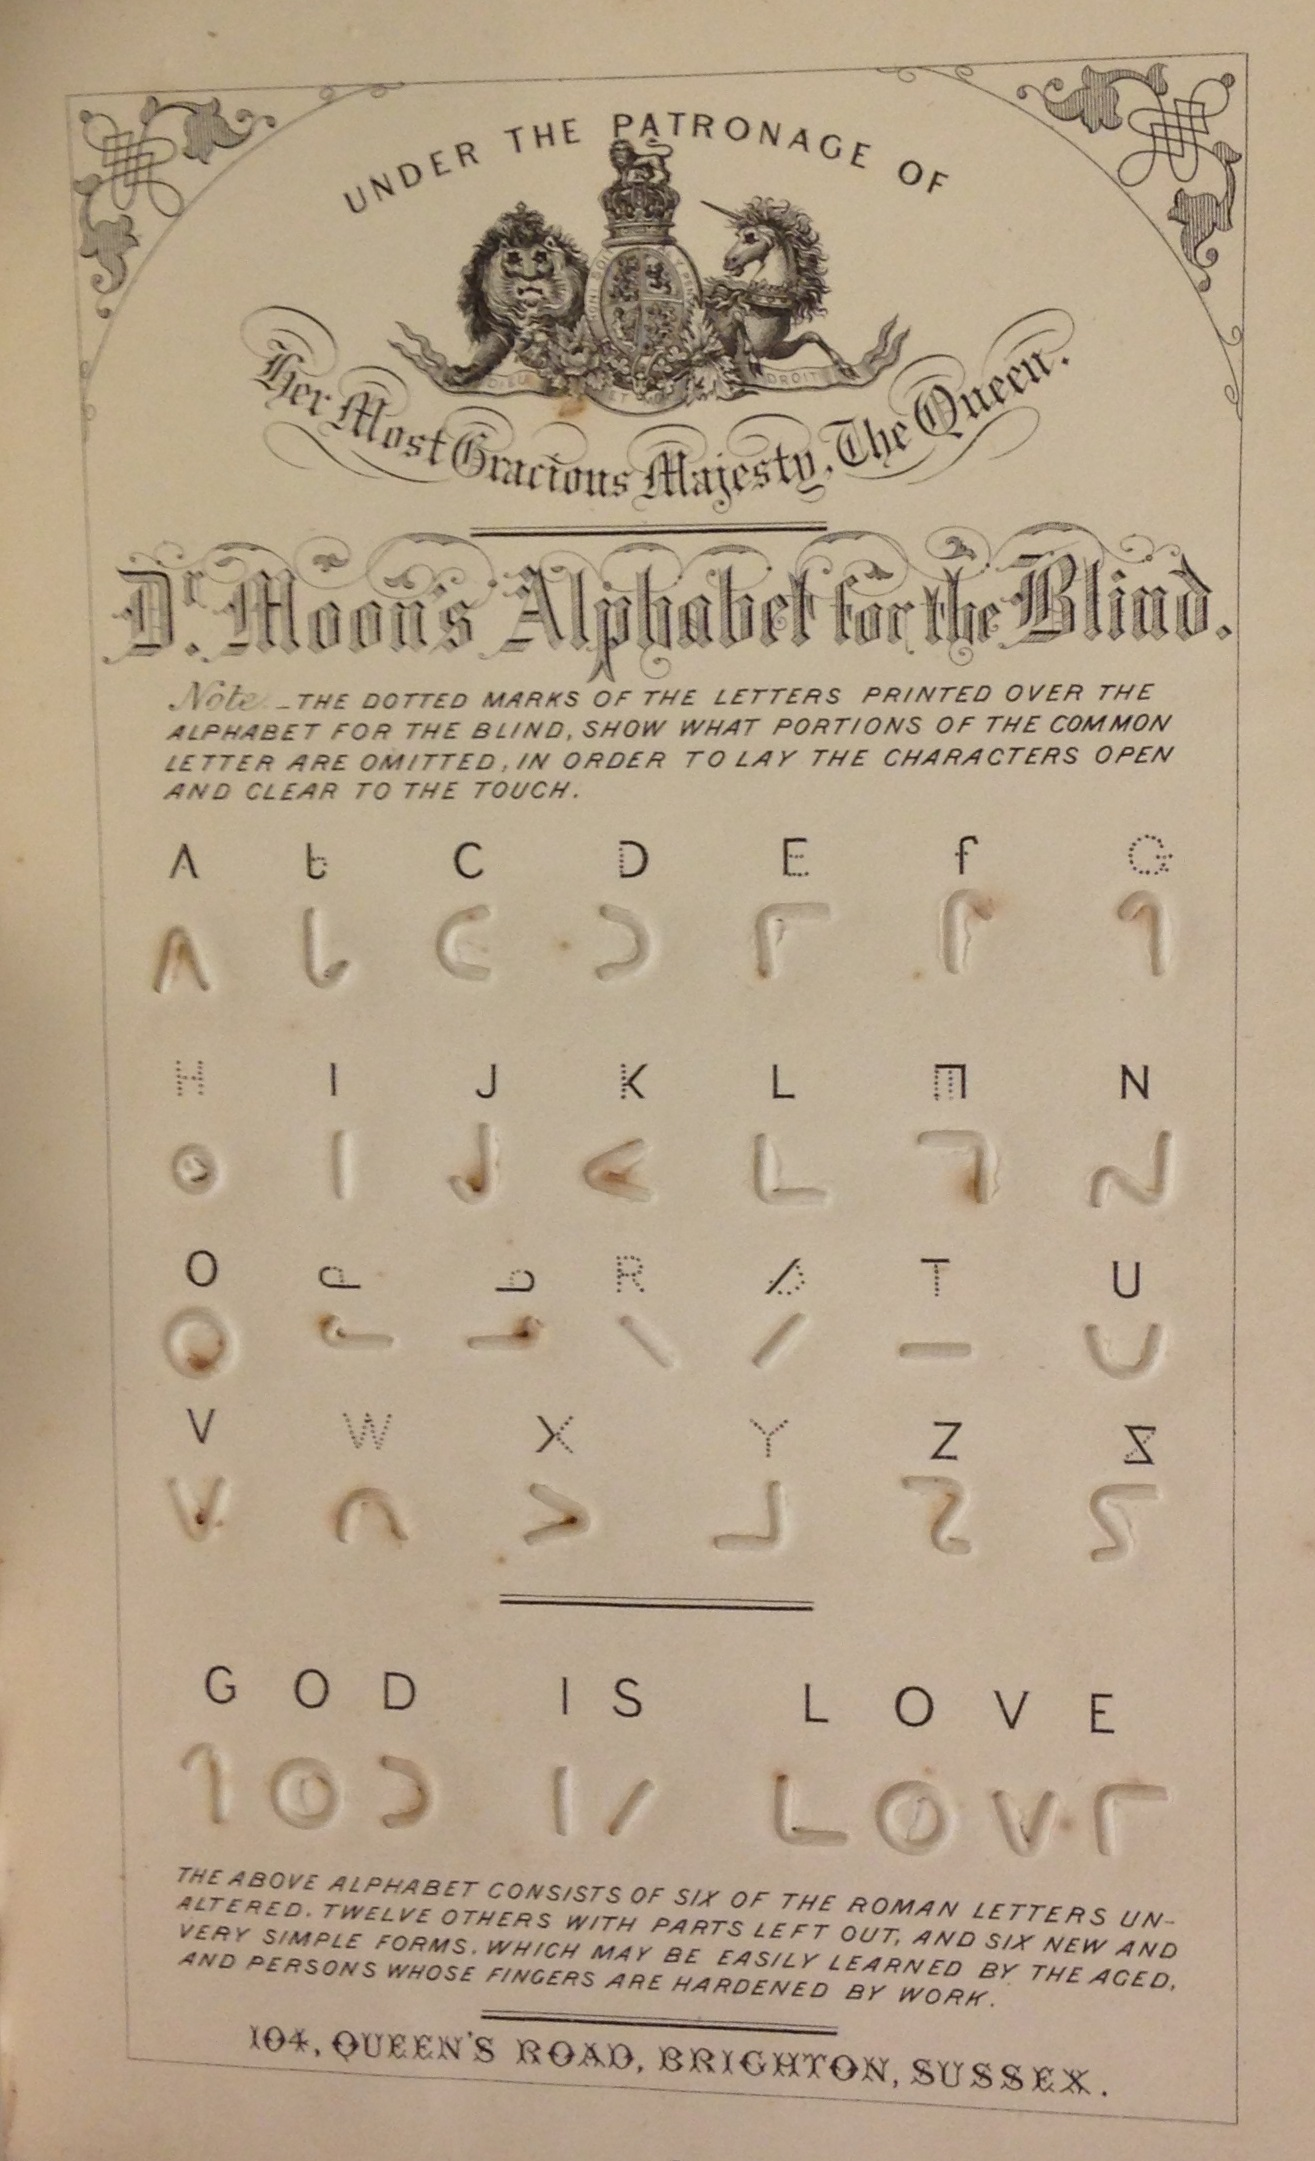 The Rev. William Moon's simplified manual alphabet, in Light for the blind: a history of the origin and success of Moon's system of reading (embossed in various languages) for the blind (London: Longmans & Co., 1873).  (HV1678 .M84 1873)